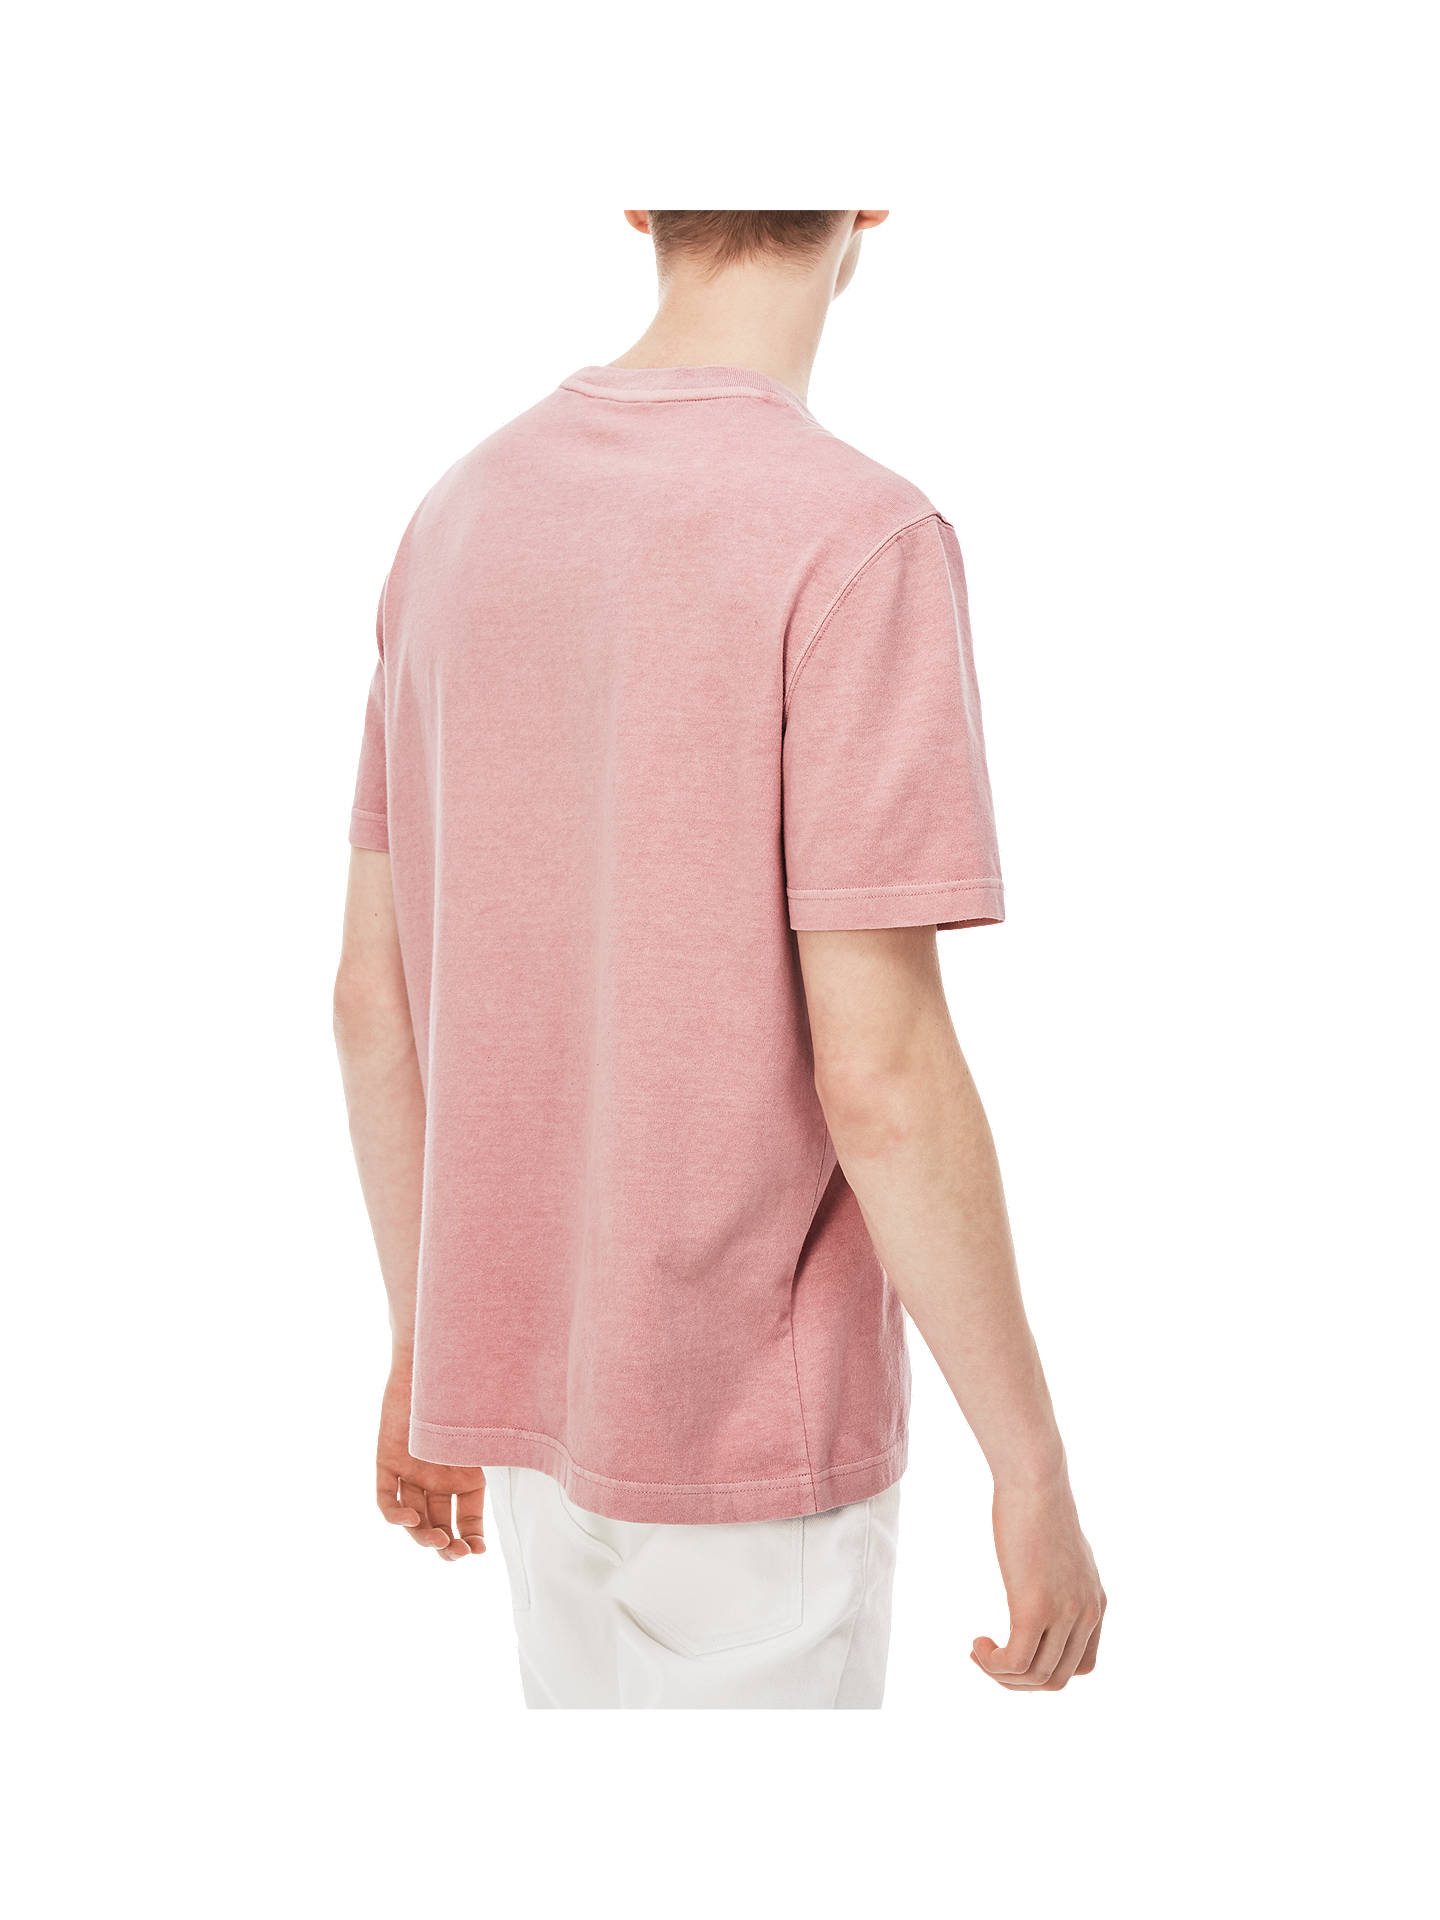 BuyLacoste LIVE Small Logo Short Sleeve T-Shirt, Pink, S Online at johnlewis.com